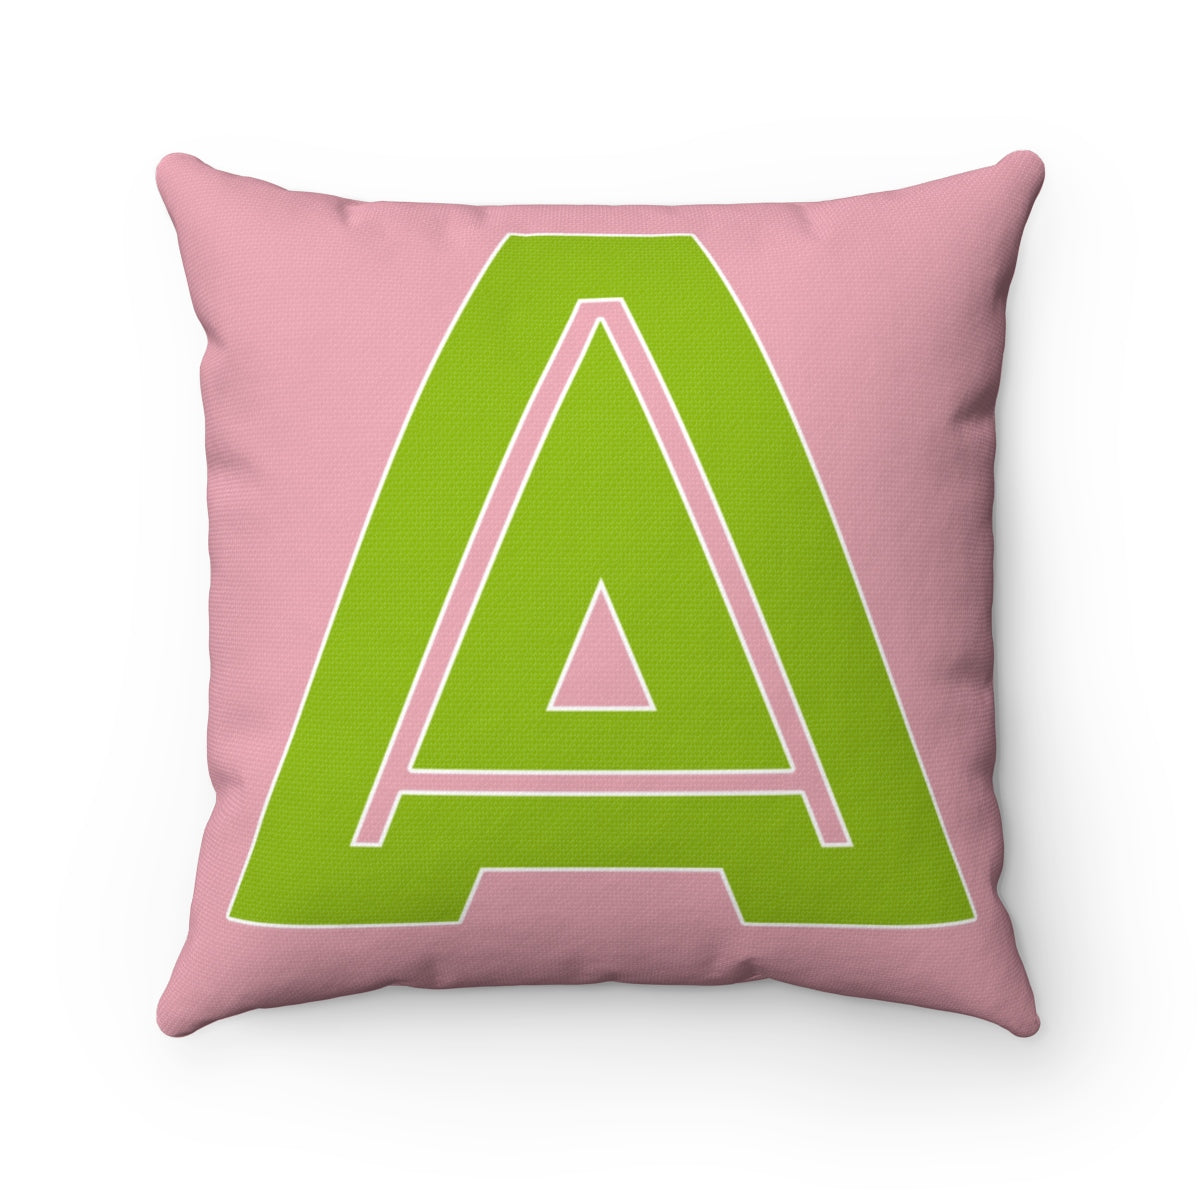 Pink and Green A Pillow